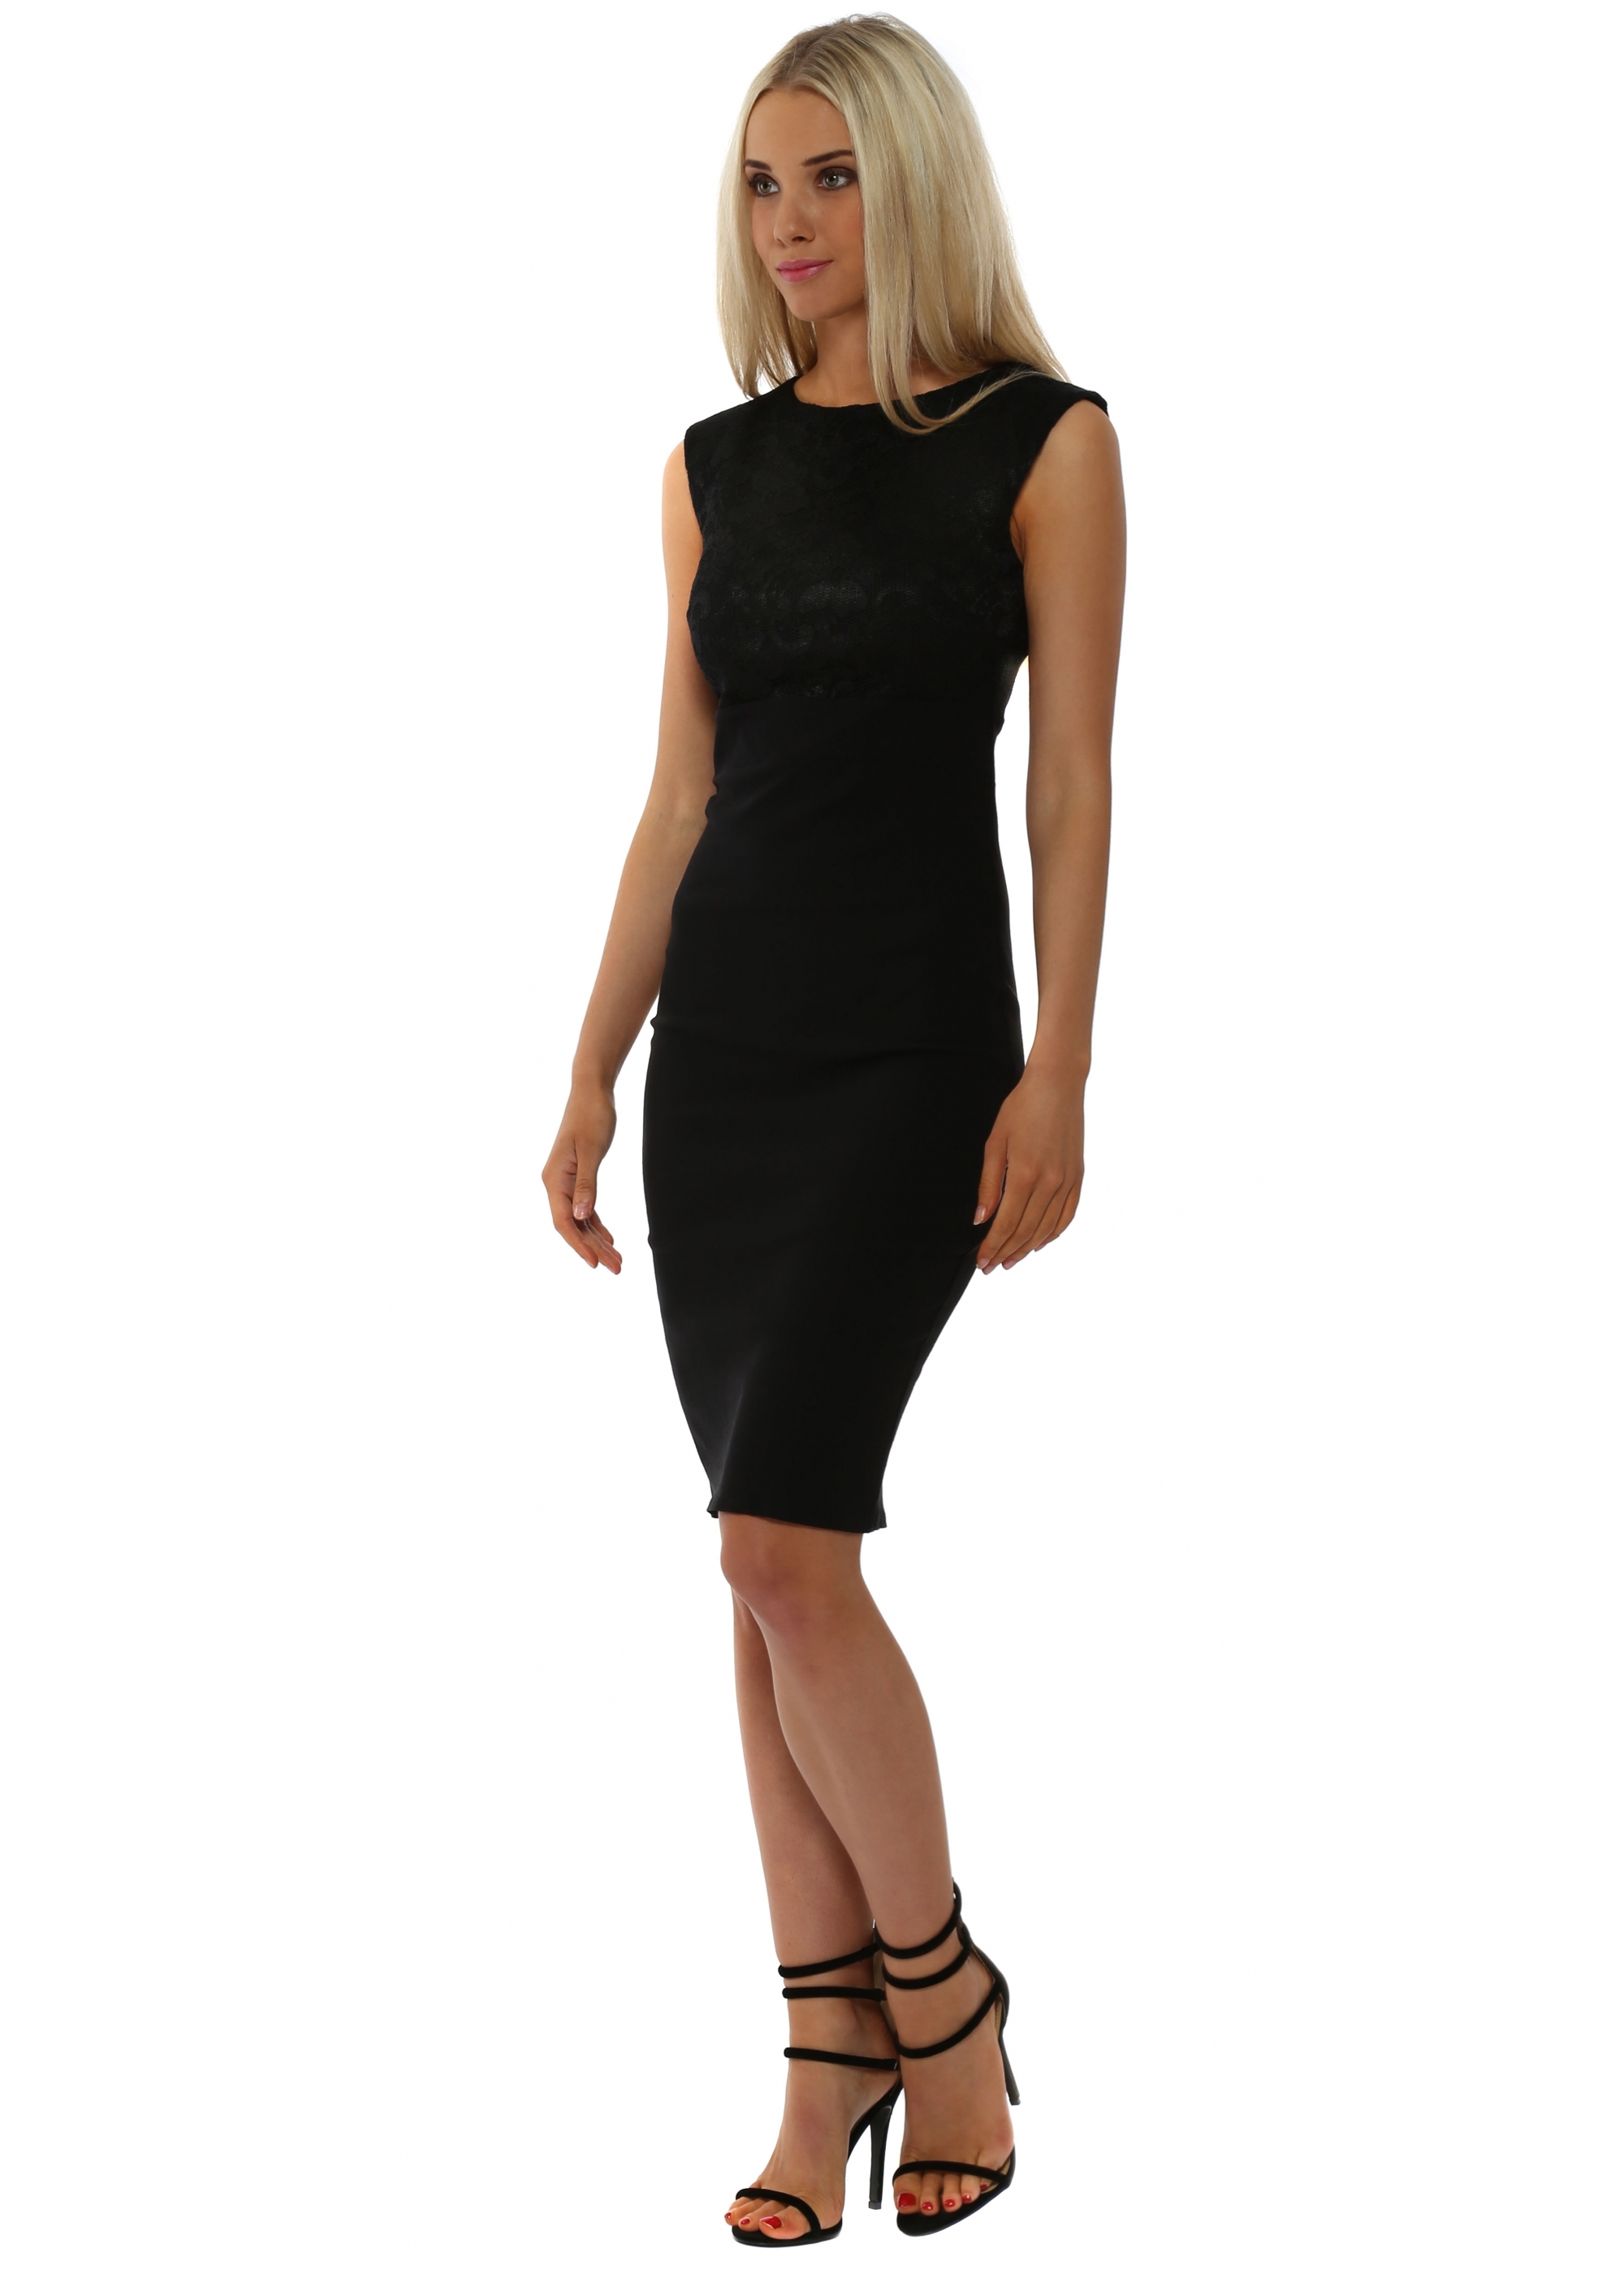 207b67fba4d035 Goddess London Dress - Black Lace Designer Pencil Dress